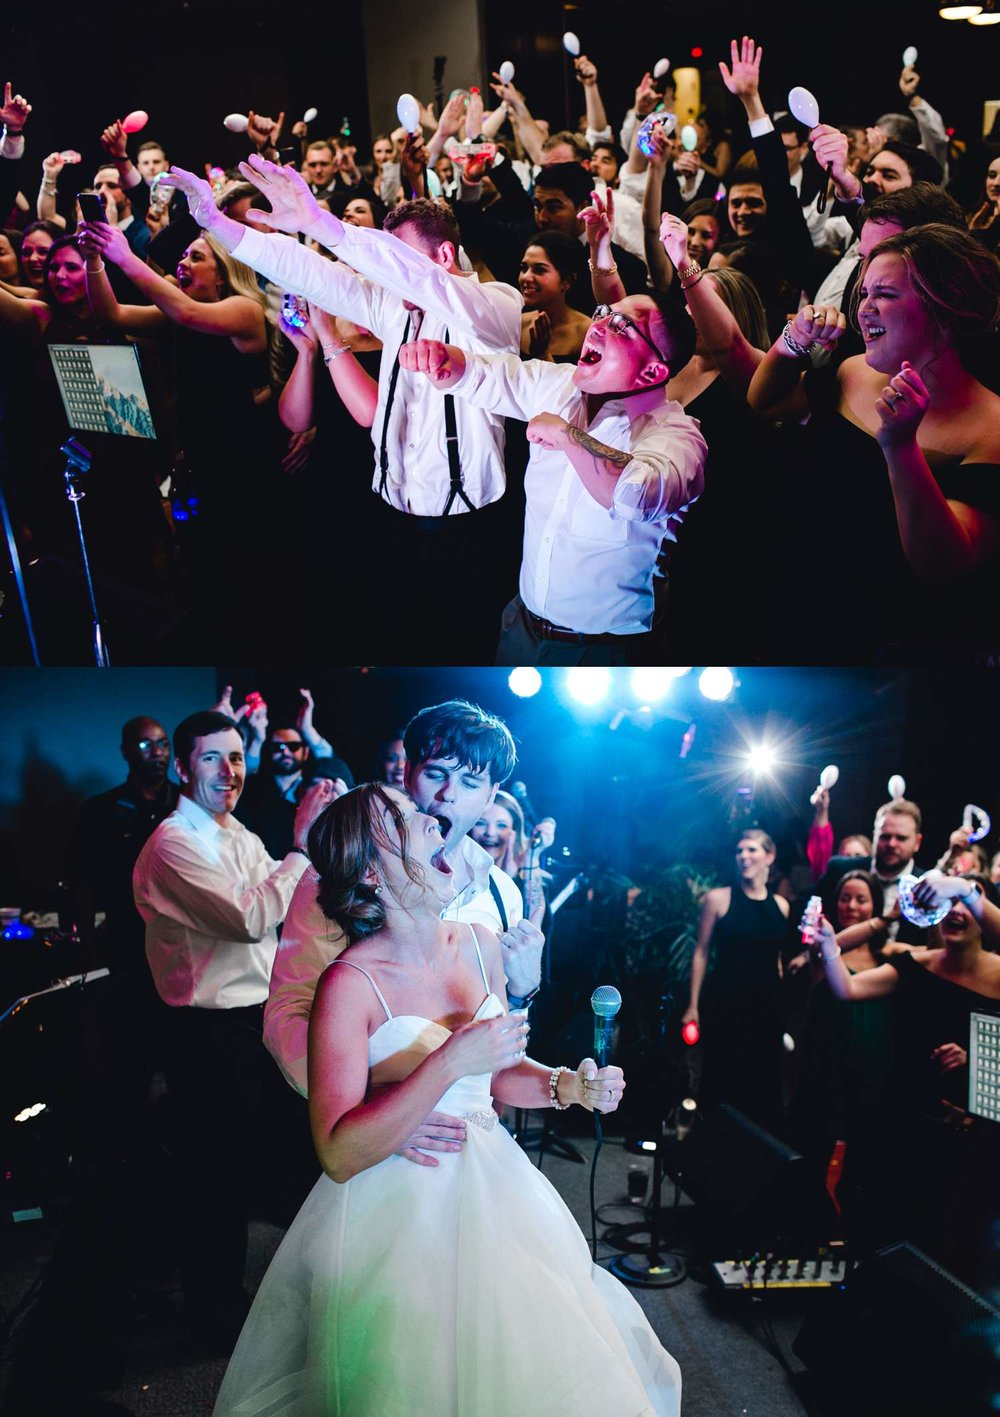 MARLEE+LLOYD+MORGAN+ALLEEJ+TEXAS+TECH+MERKET+ALUMNI+WEDDINGS+LUBBOCK+WEST+TABLE+CLASSIC+SPAIN_0299.jpg